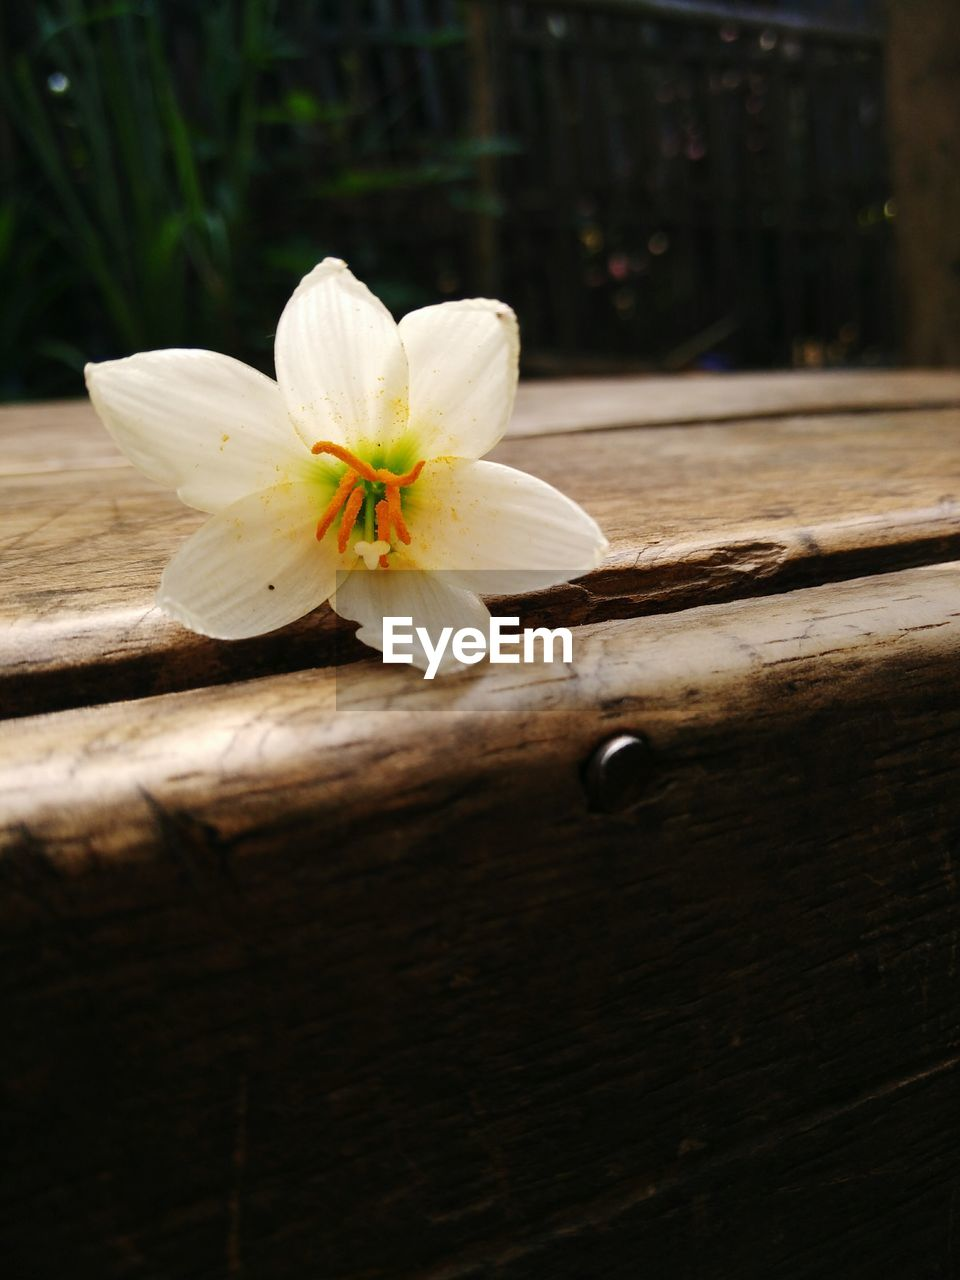 flower, petal, flower head, fragility, freshness, white color, beauty in nature, no people, nature, close-up, wood - material, outdoors, day, frangipani